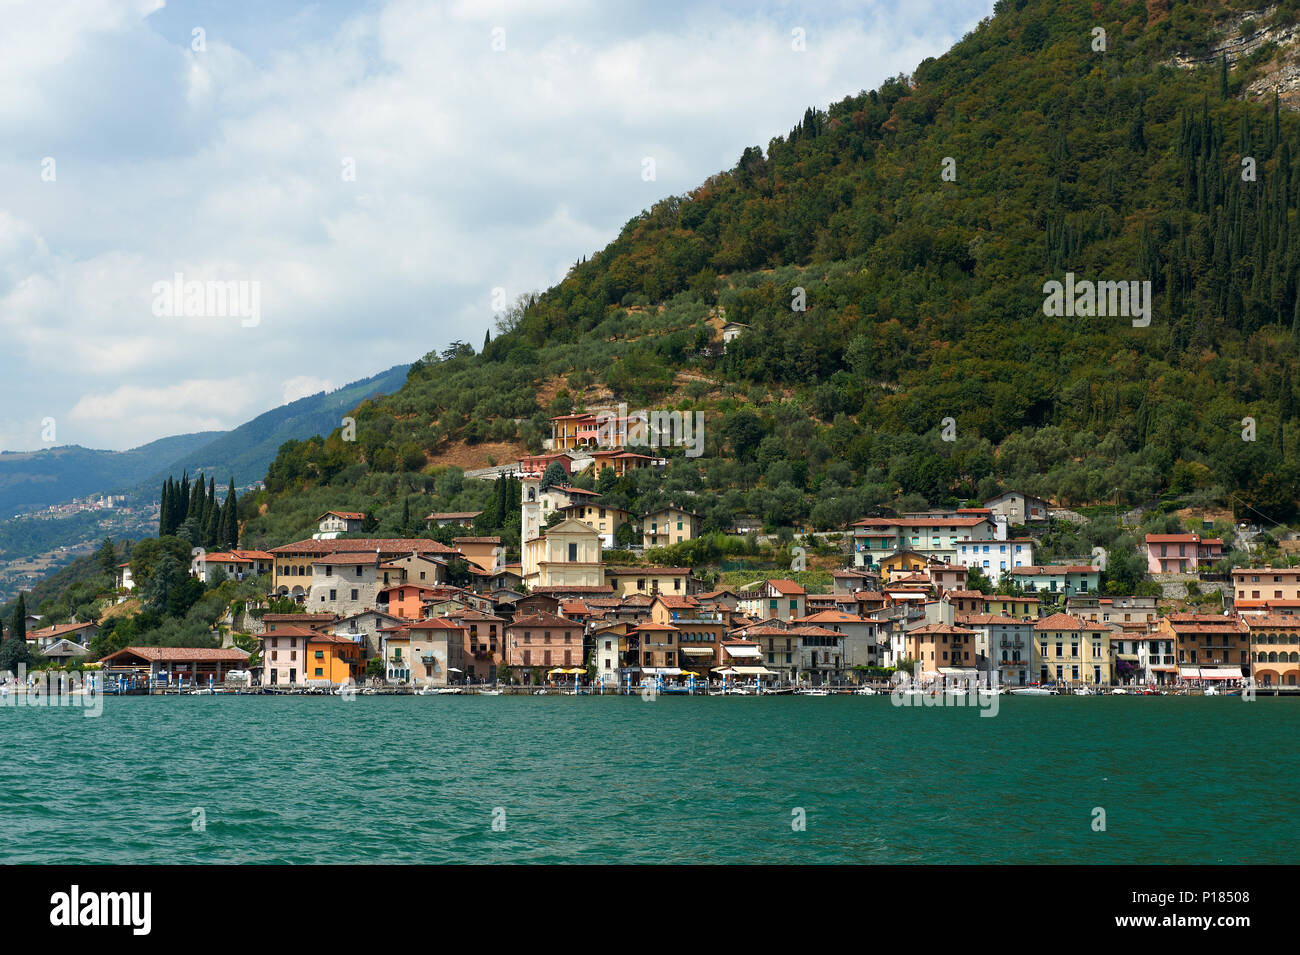 Peschiera Maraglio (Bs), island of Montisola, lake of Iseo, Italy,a view of the town - Stock Image